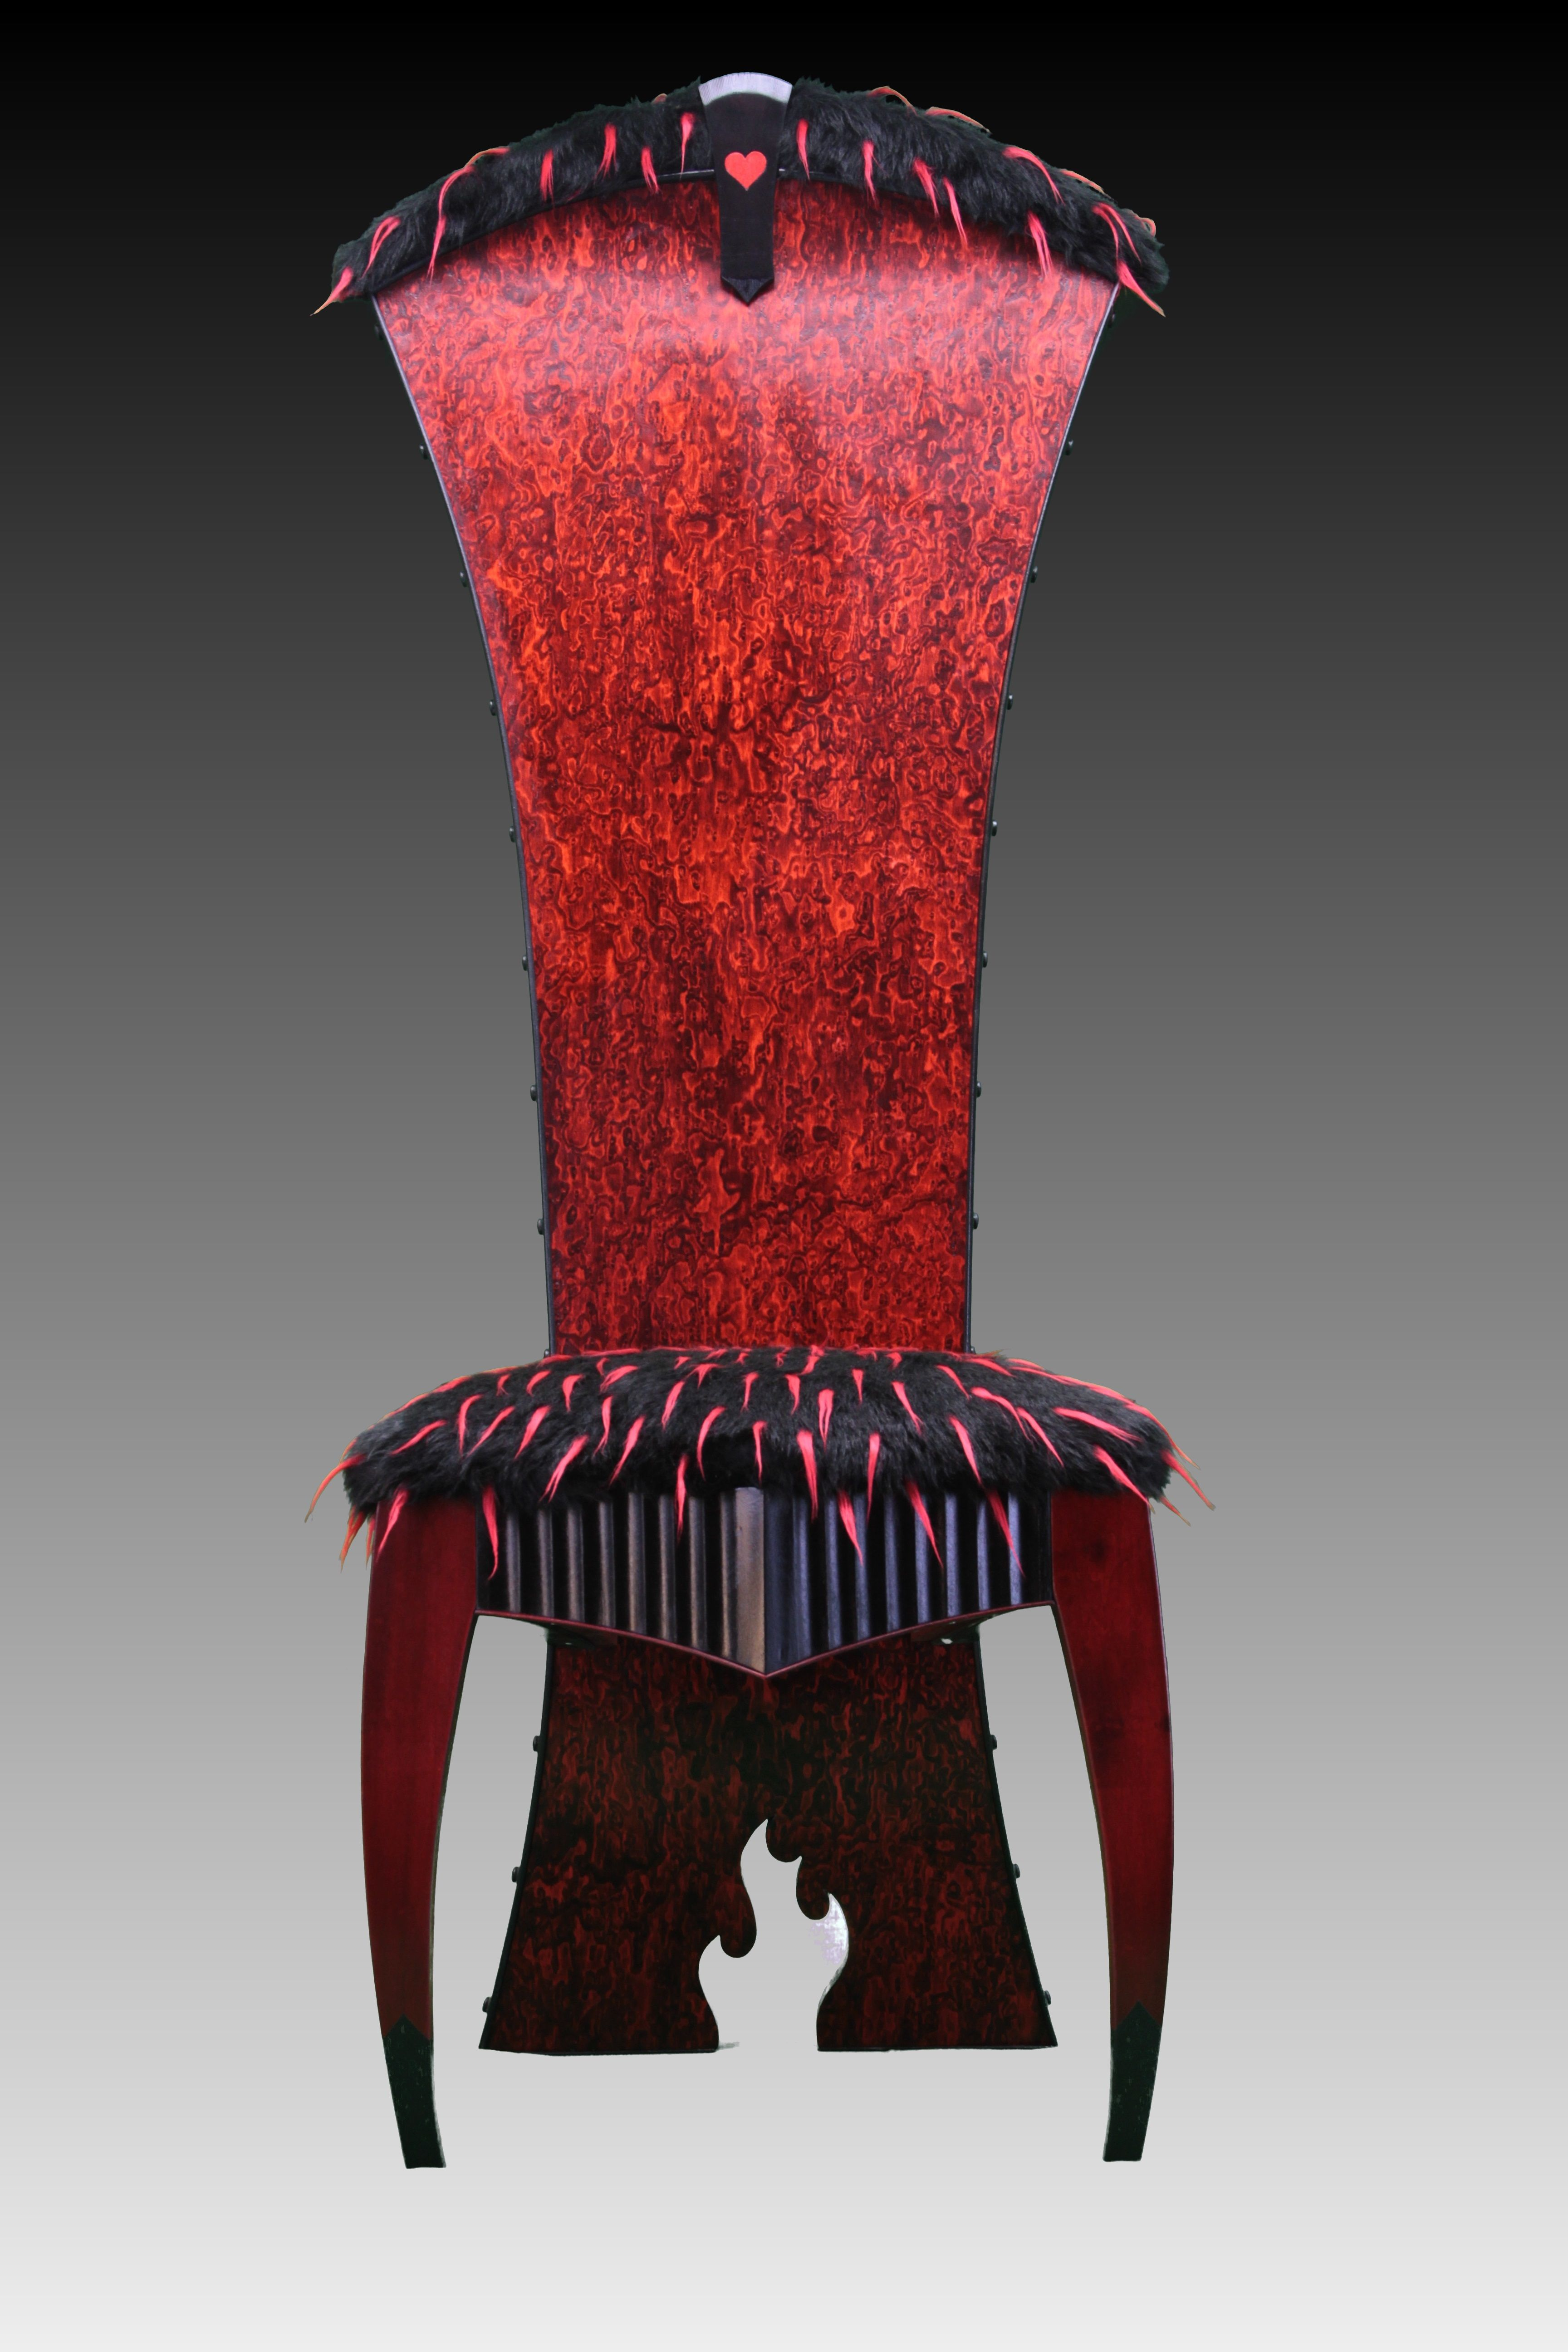 Game of thrones inspired chair by clint parker cathedra